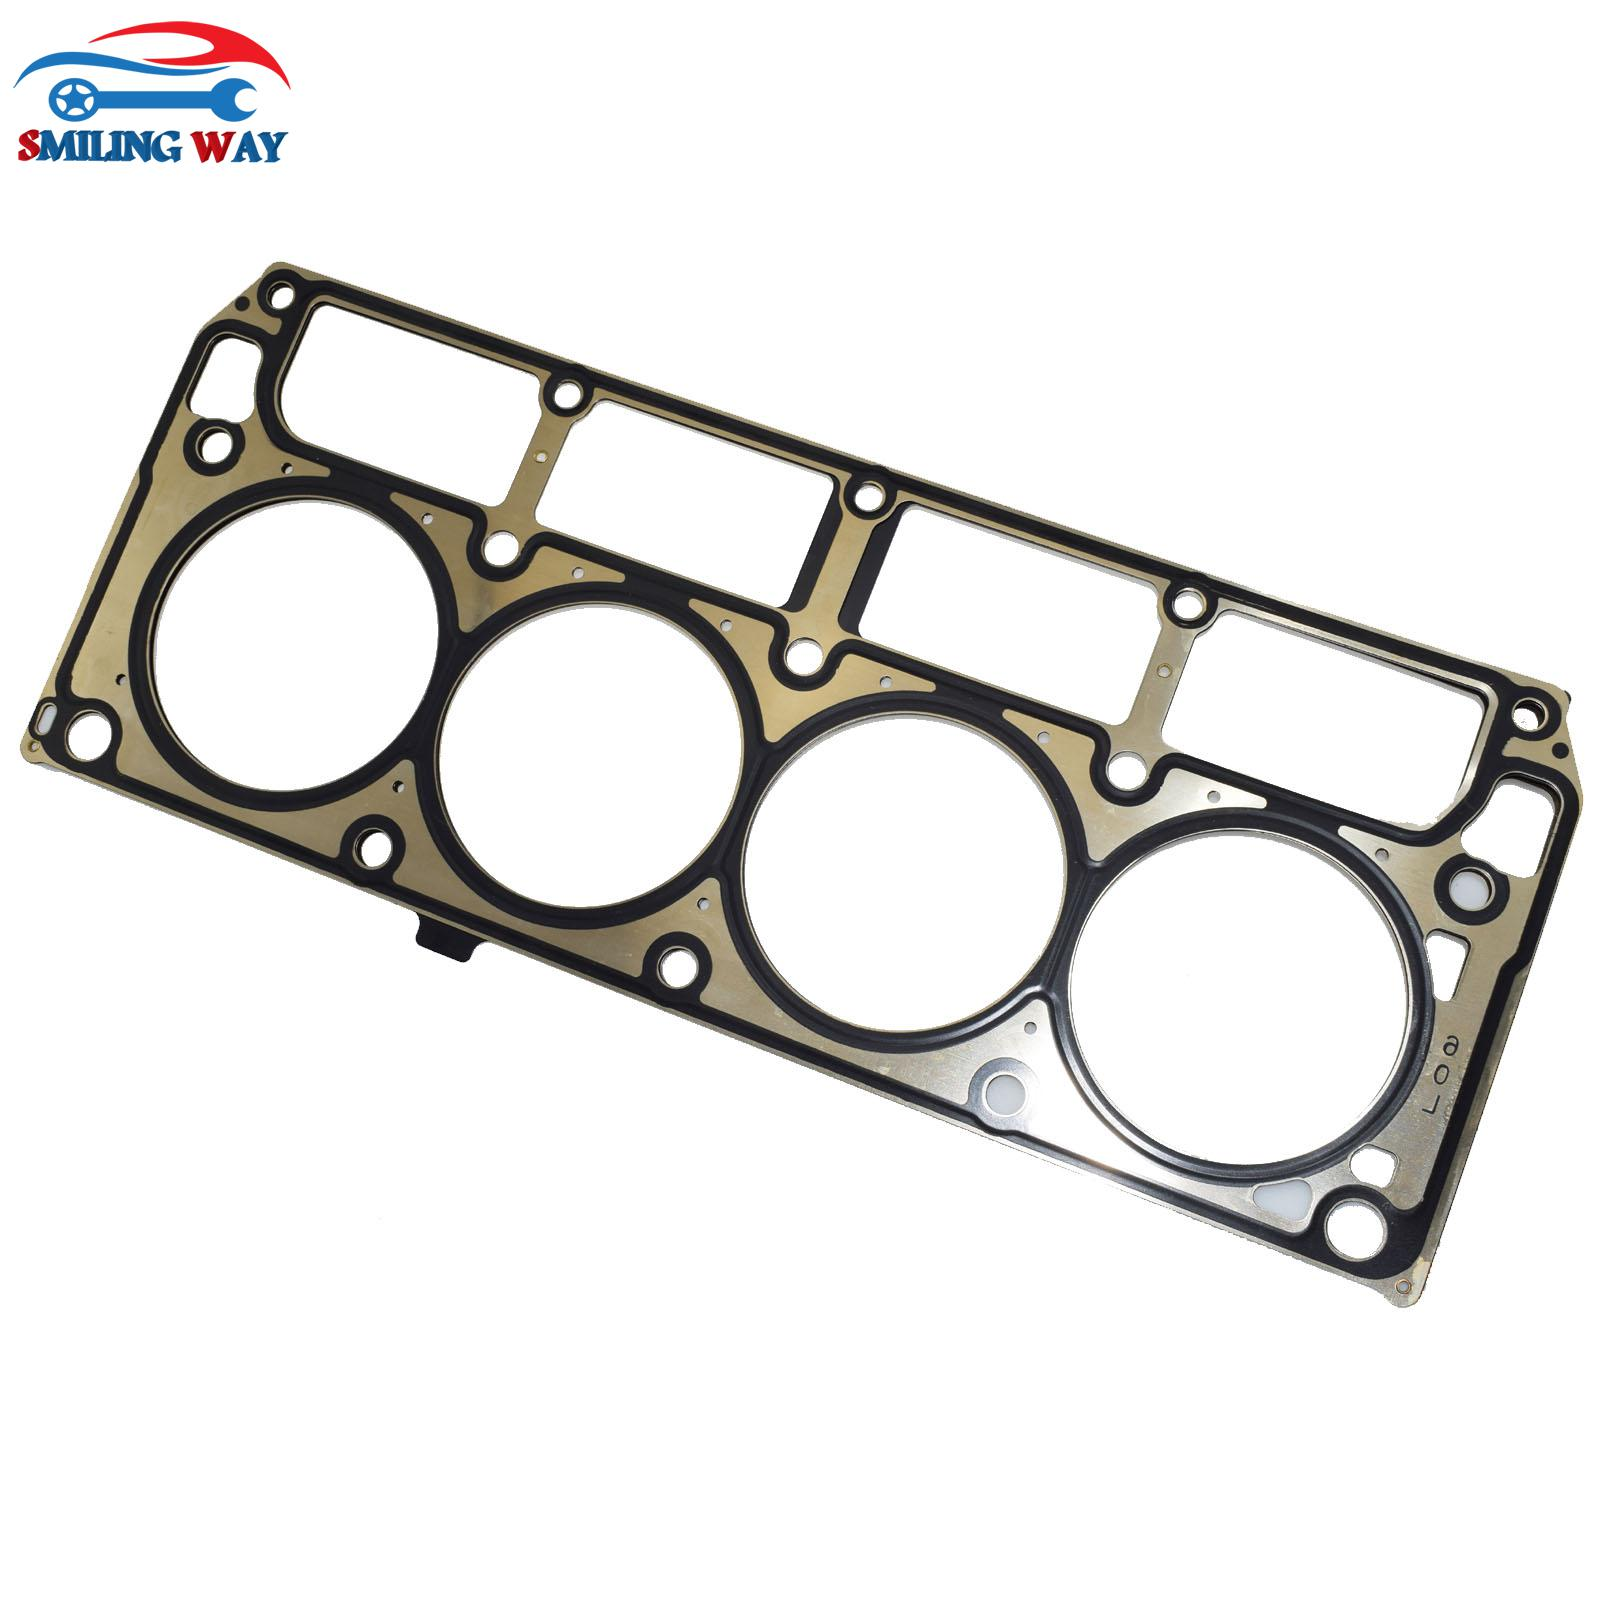 OEM Cylinder Head Gasket Pair for Chevy GMC Cadillac Pontiac Hummer V8 6.0L New